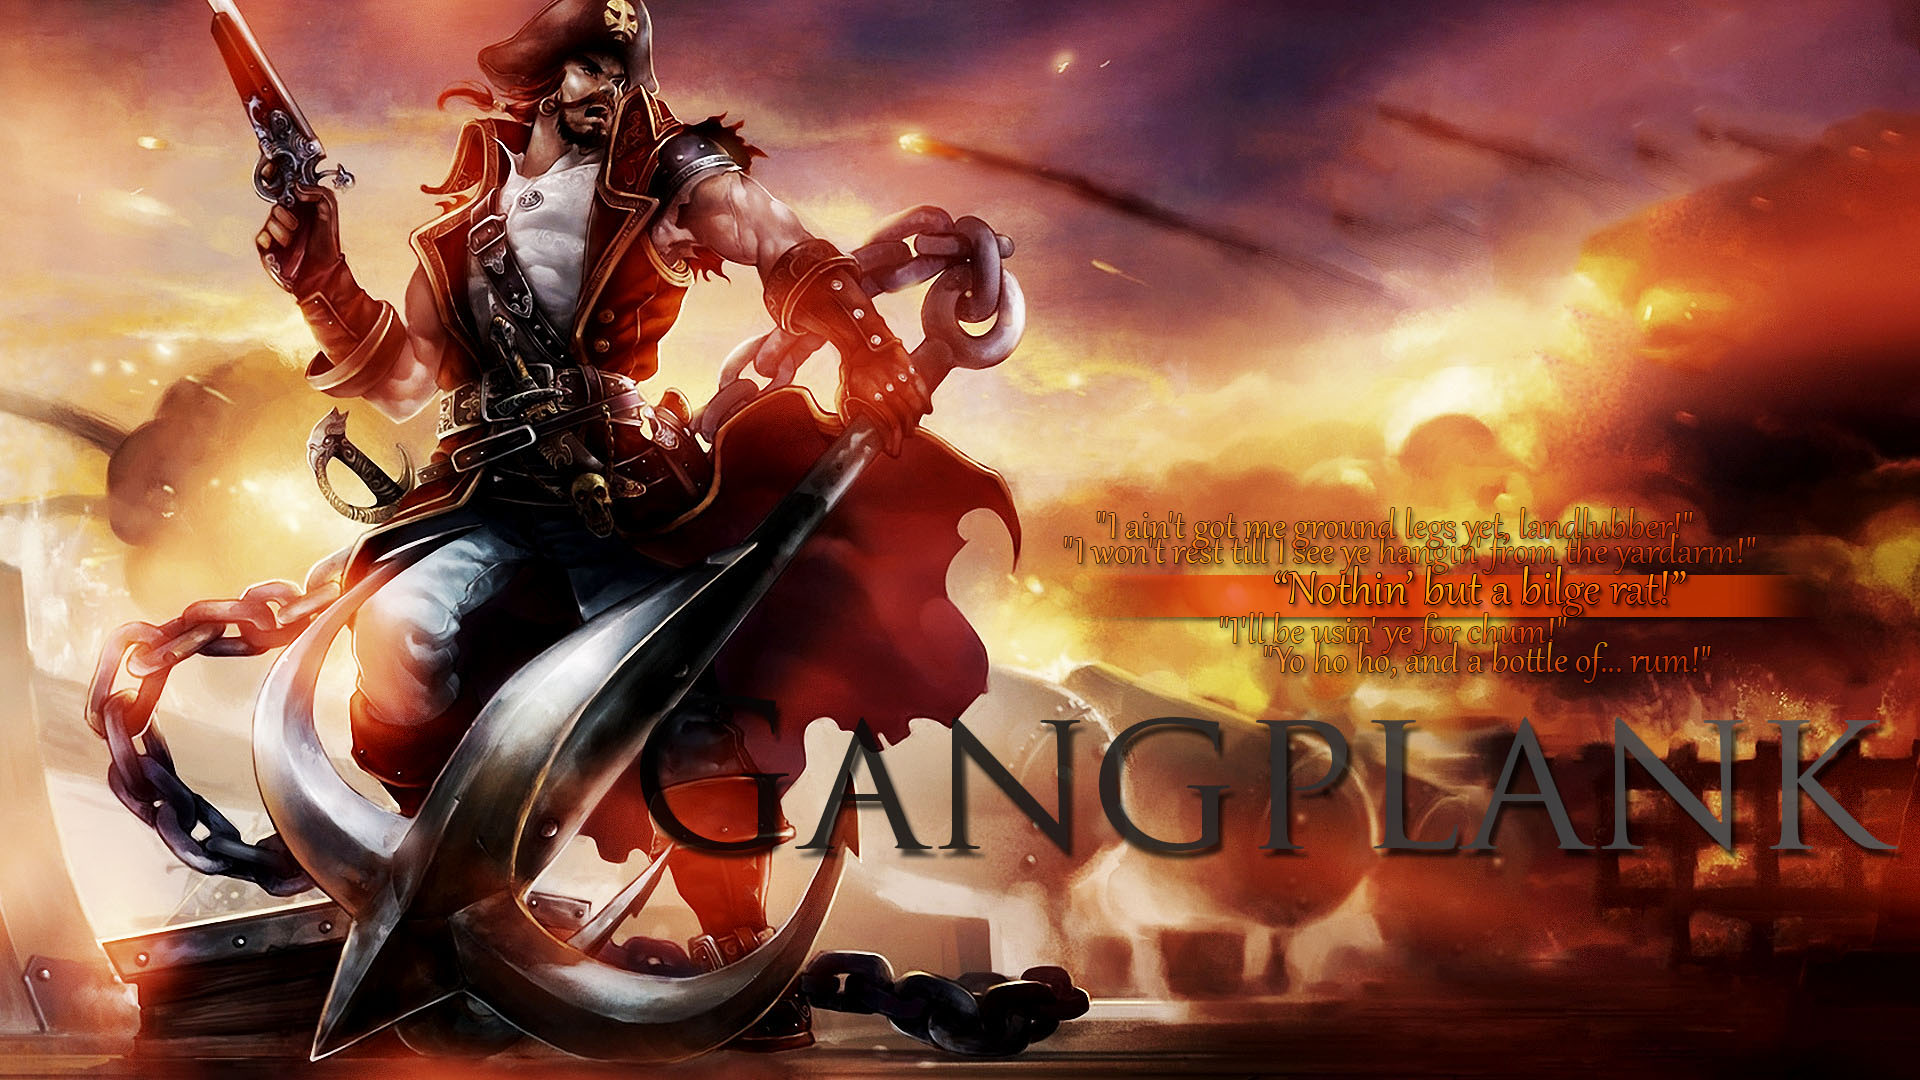 gangplank_by_leaguewallpapers-d5x6y2r